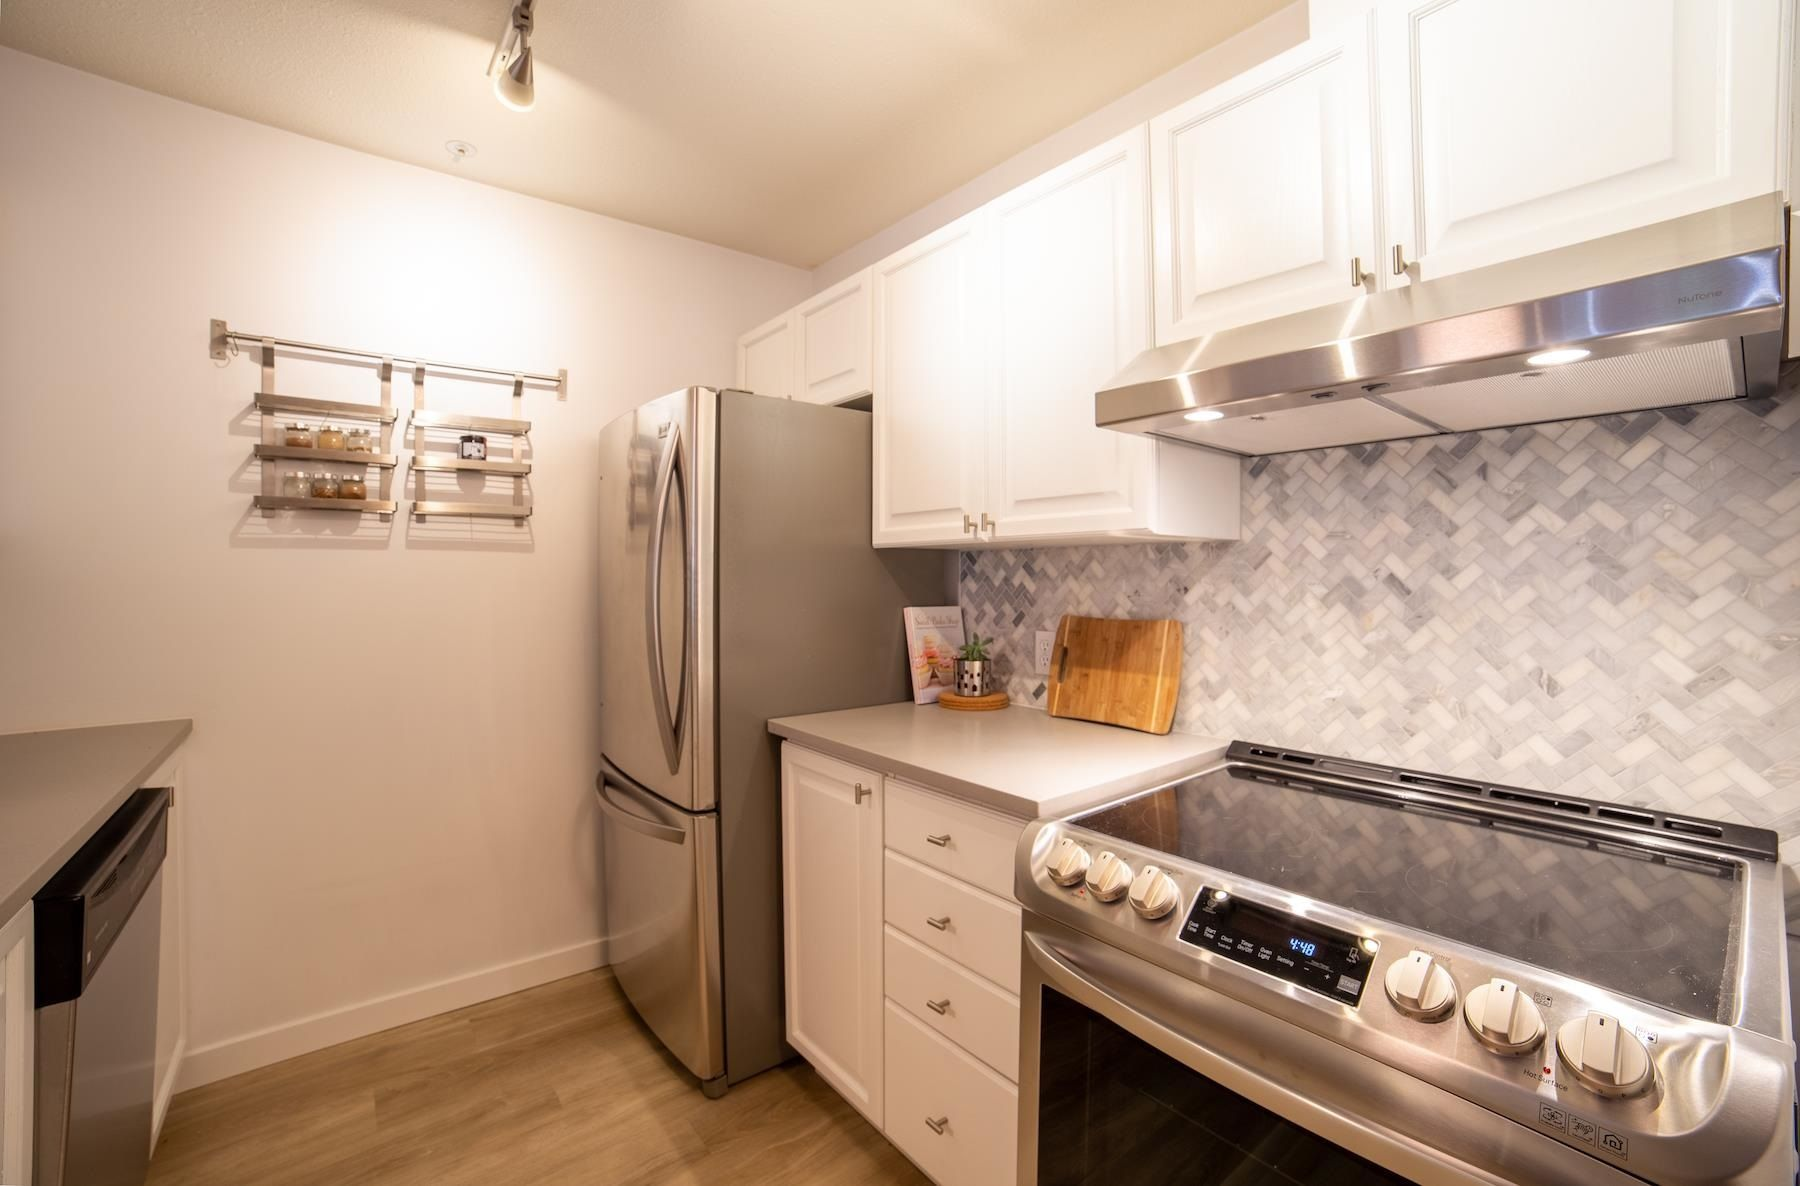 """Main Photo: 301 5577 SMITH Avenue in Burnaby: Central Park BS Condo for sale in """"COTTONWOOD GROVE"""" (Burnaby South)  : MLS®# R2601531"""